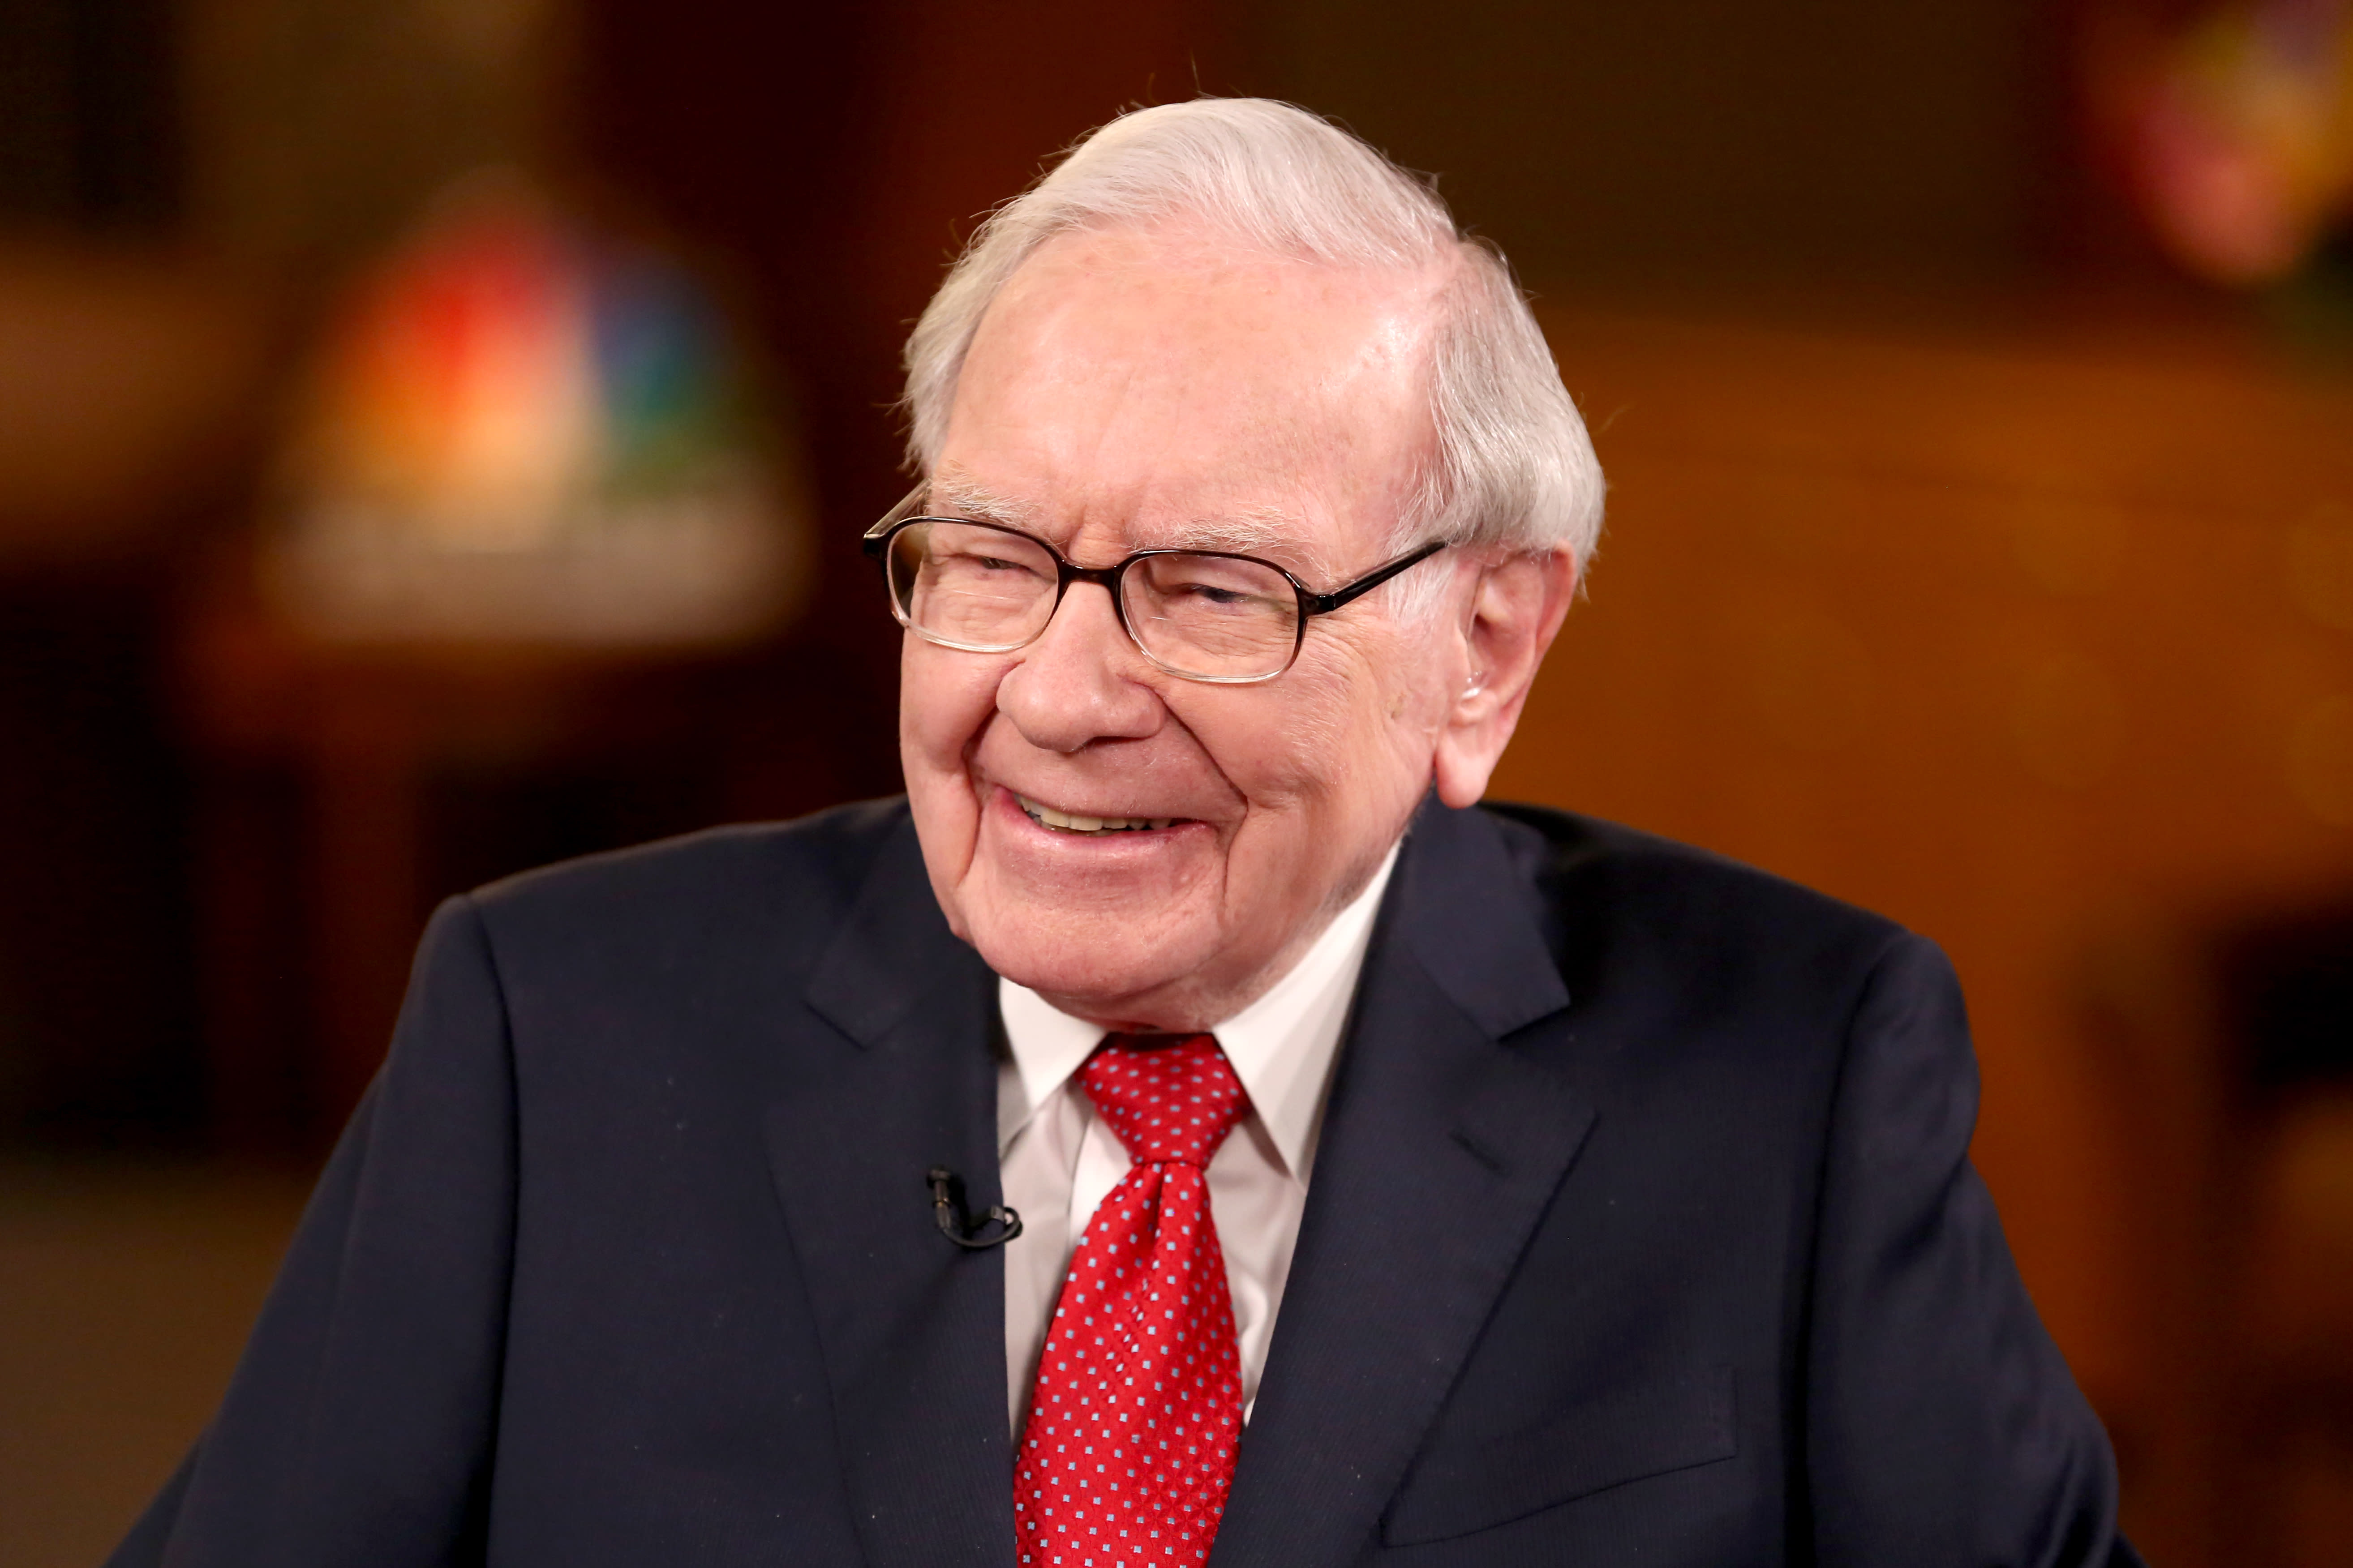 Buffett cautions on 'extreme consequences' from the Fed's recent moves